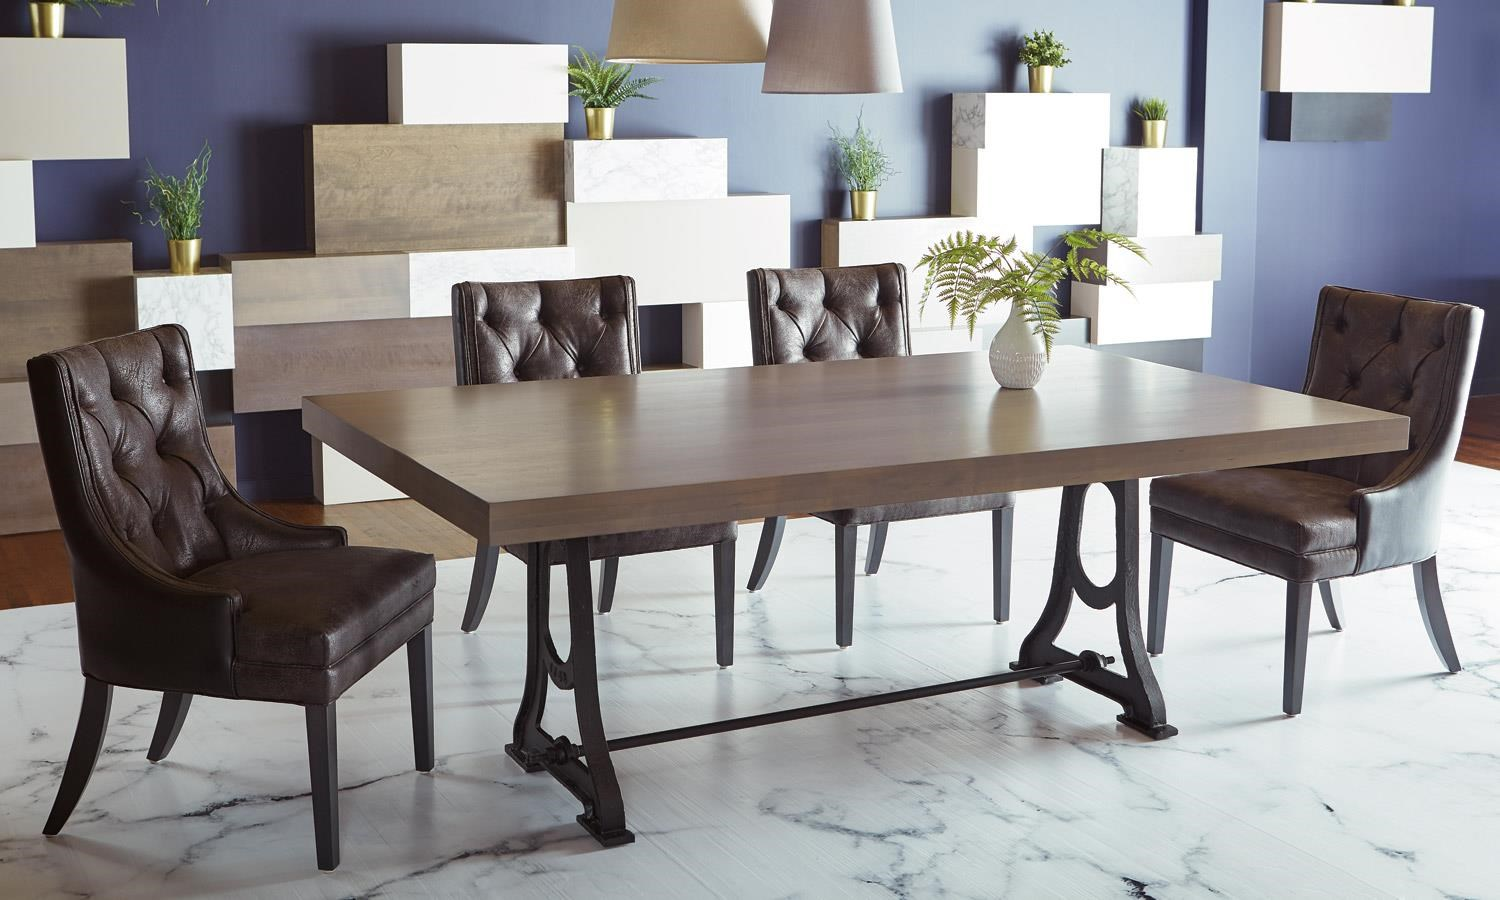 Everest Everest Dining Table by Bermex at Stoney Creek Furniture